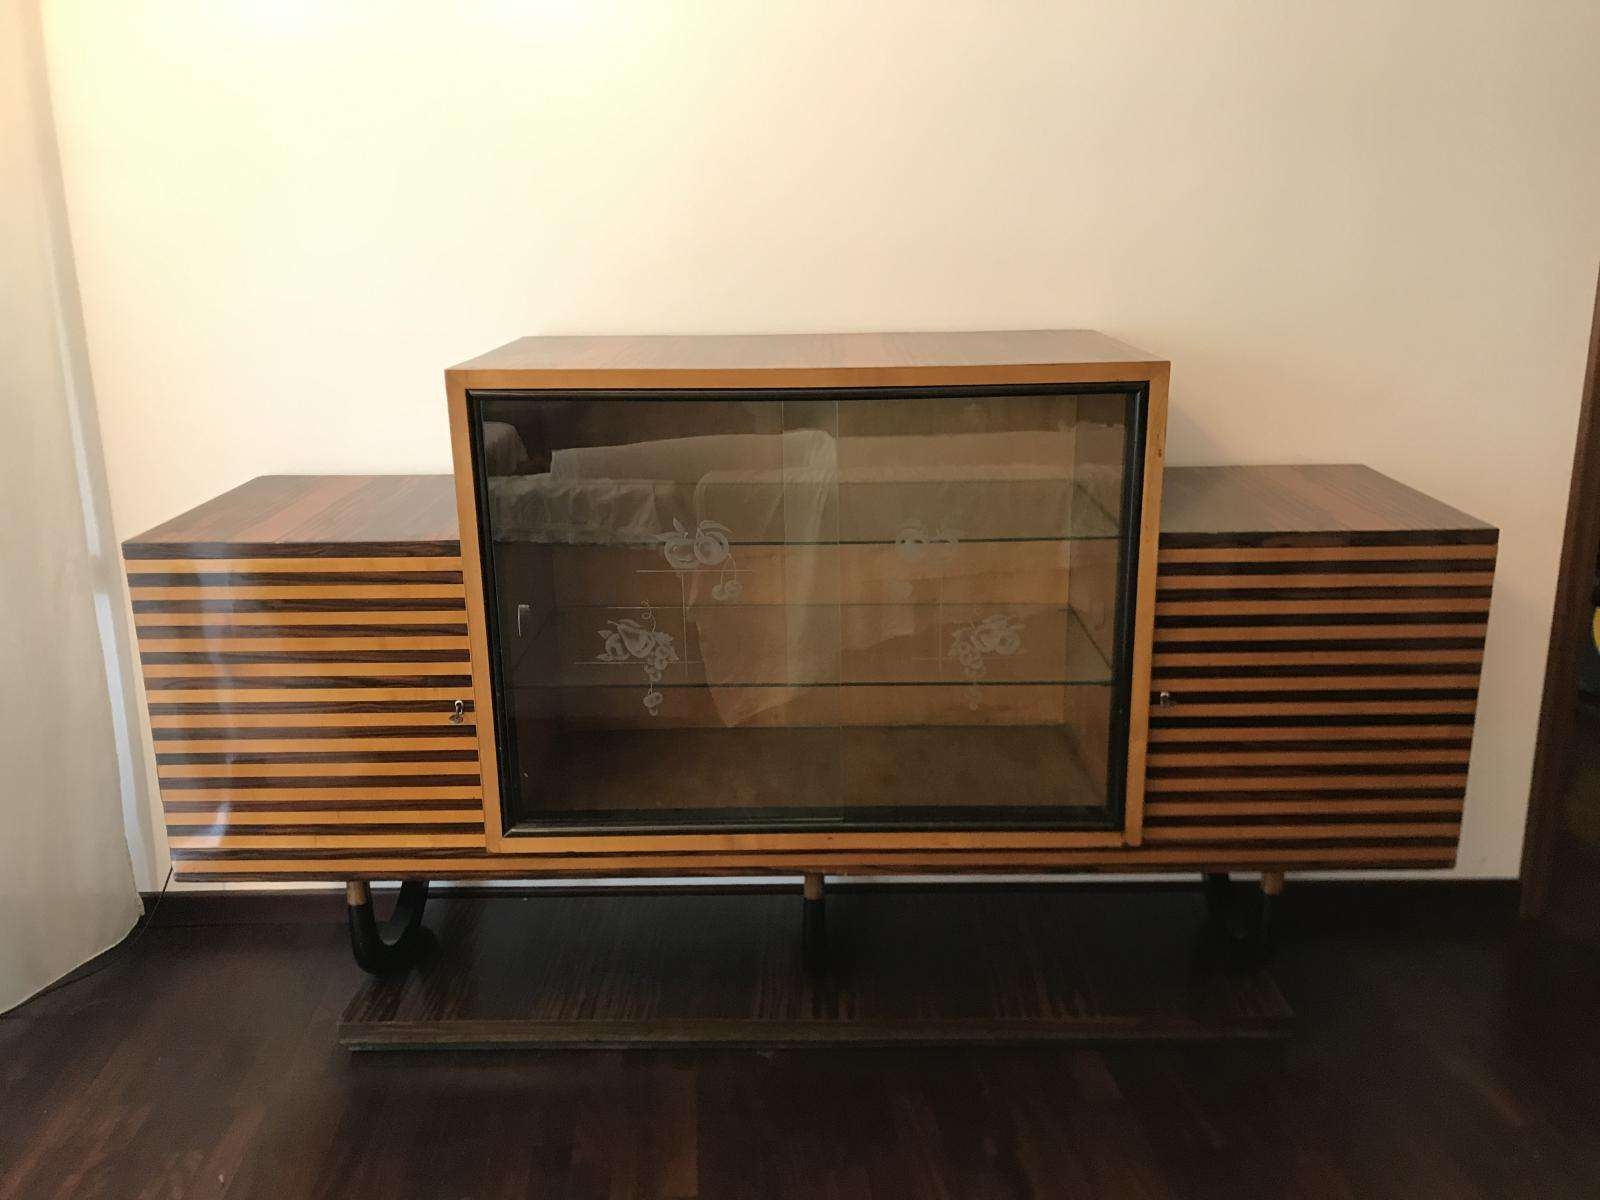 Italian Art Deco Sideboard In Walnut Burl, 1920s For Sale At Pamono For Art Deco Sideboards (View 10 of 20)